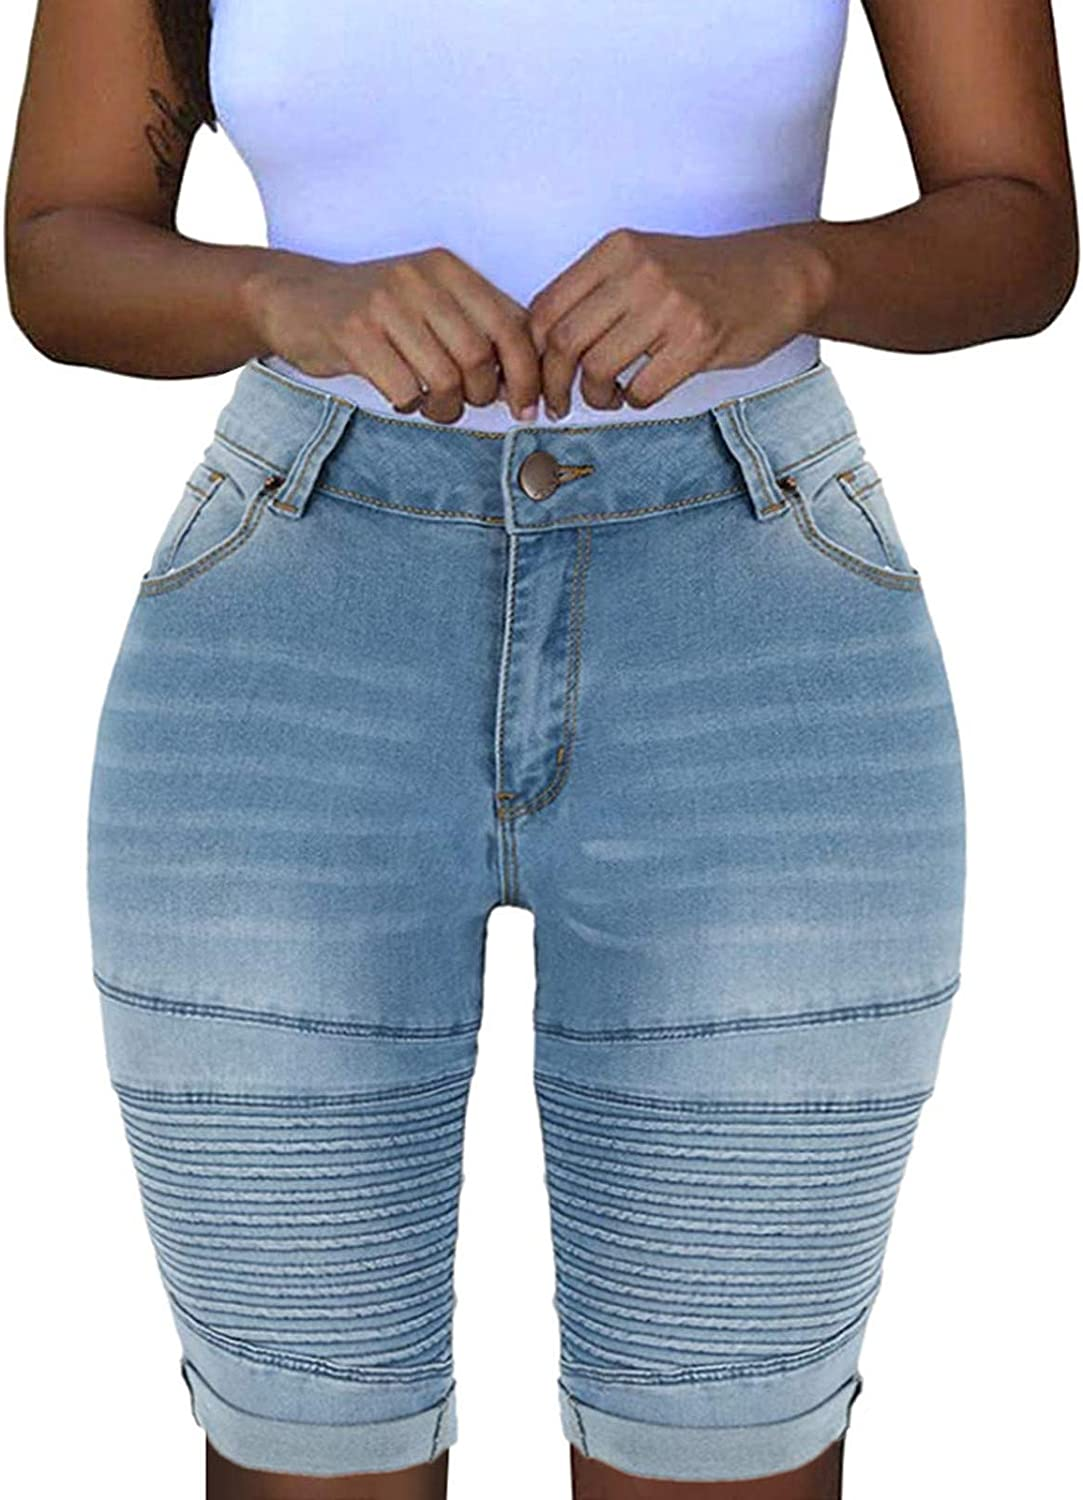 Women High Waisted Stretchy Jean Shorts Casual Summer Slim Fit Washed Distressed Rolled Hem Denim Shorts with Pocket